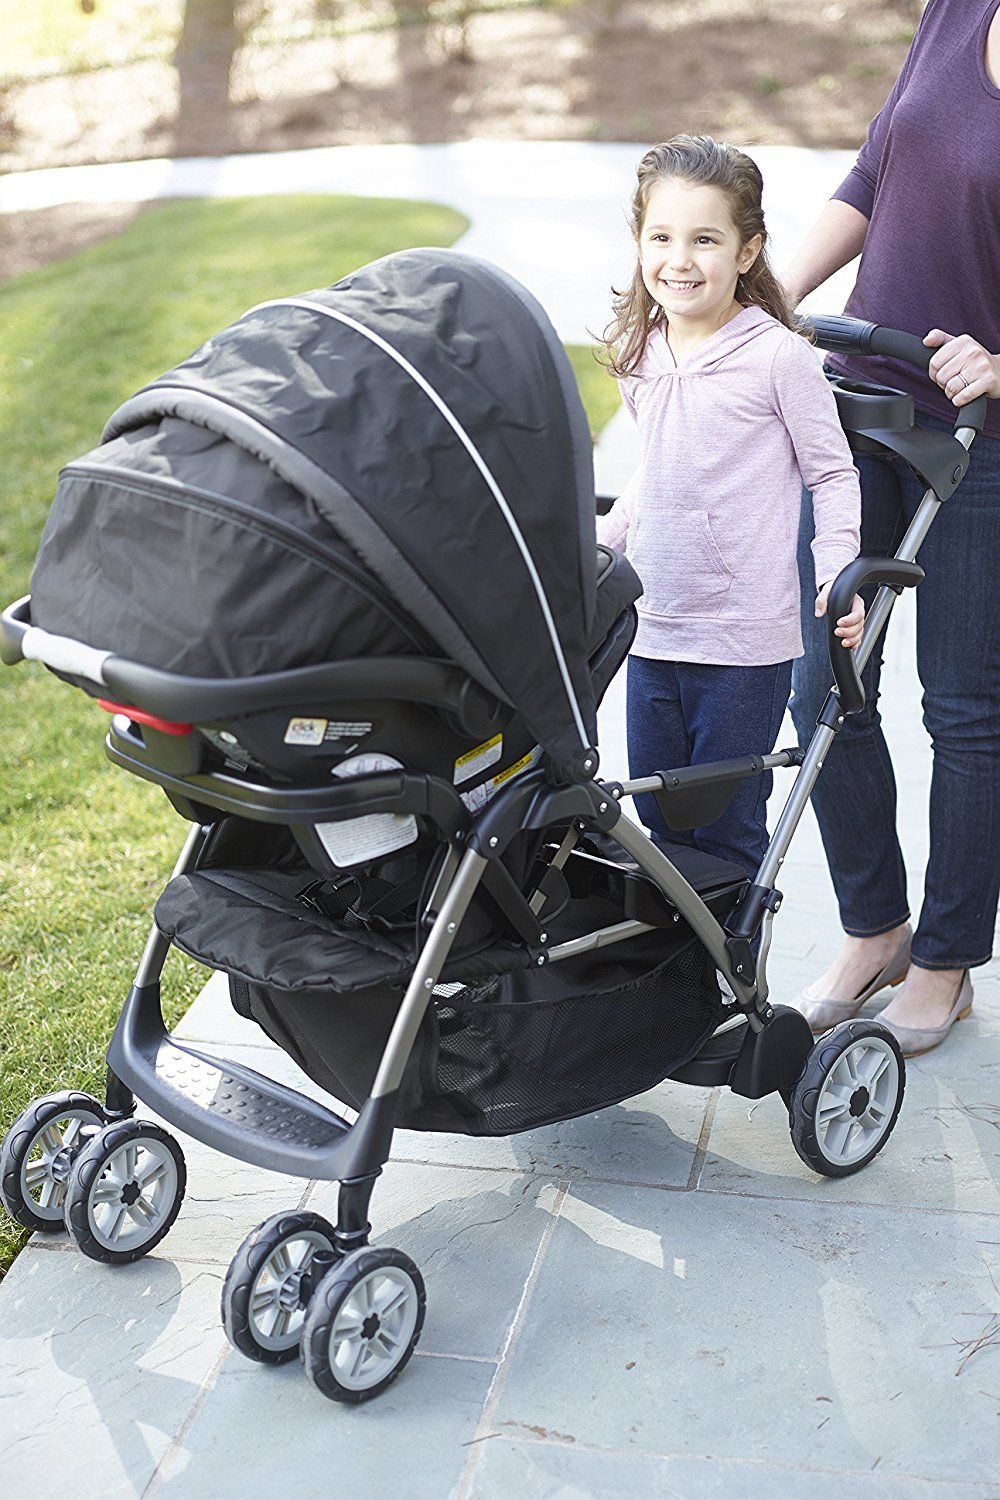 Amazon Com Graco Roomfor2 Click Connect Stand And Ride Stroller Gotham Baby Http Amzn To 2sp1ma5 Double Strollers Stroller Graco Stroller